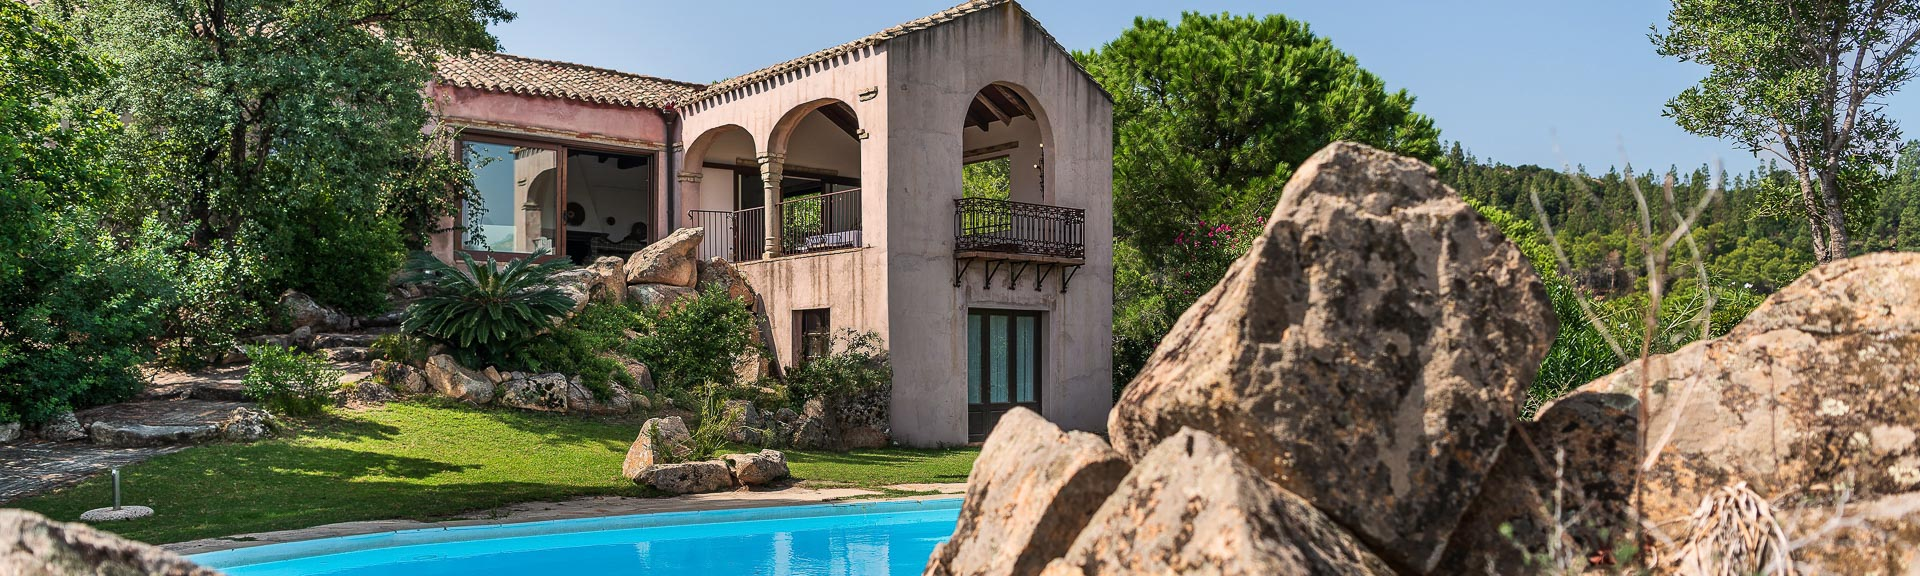 Villa Fiorita, Is Molas, Sardinien